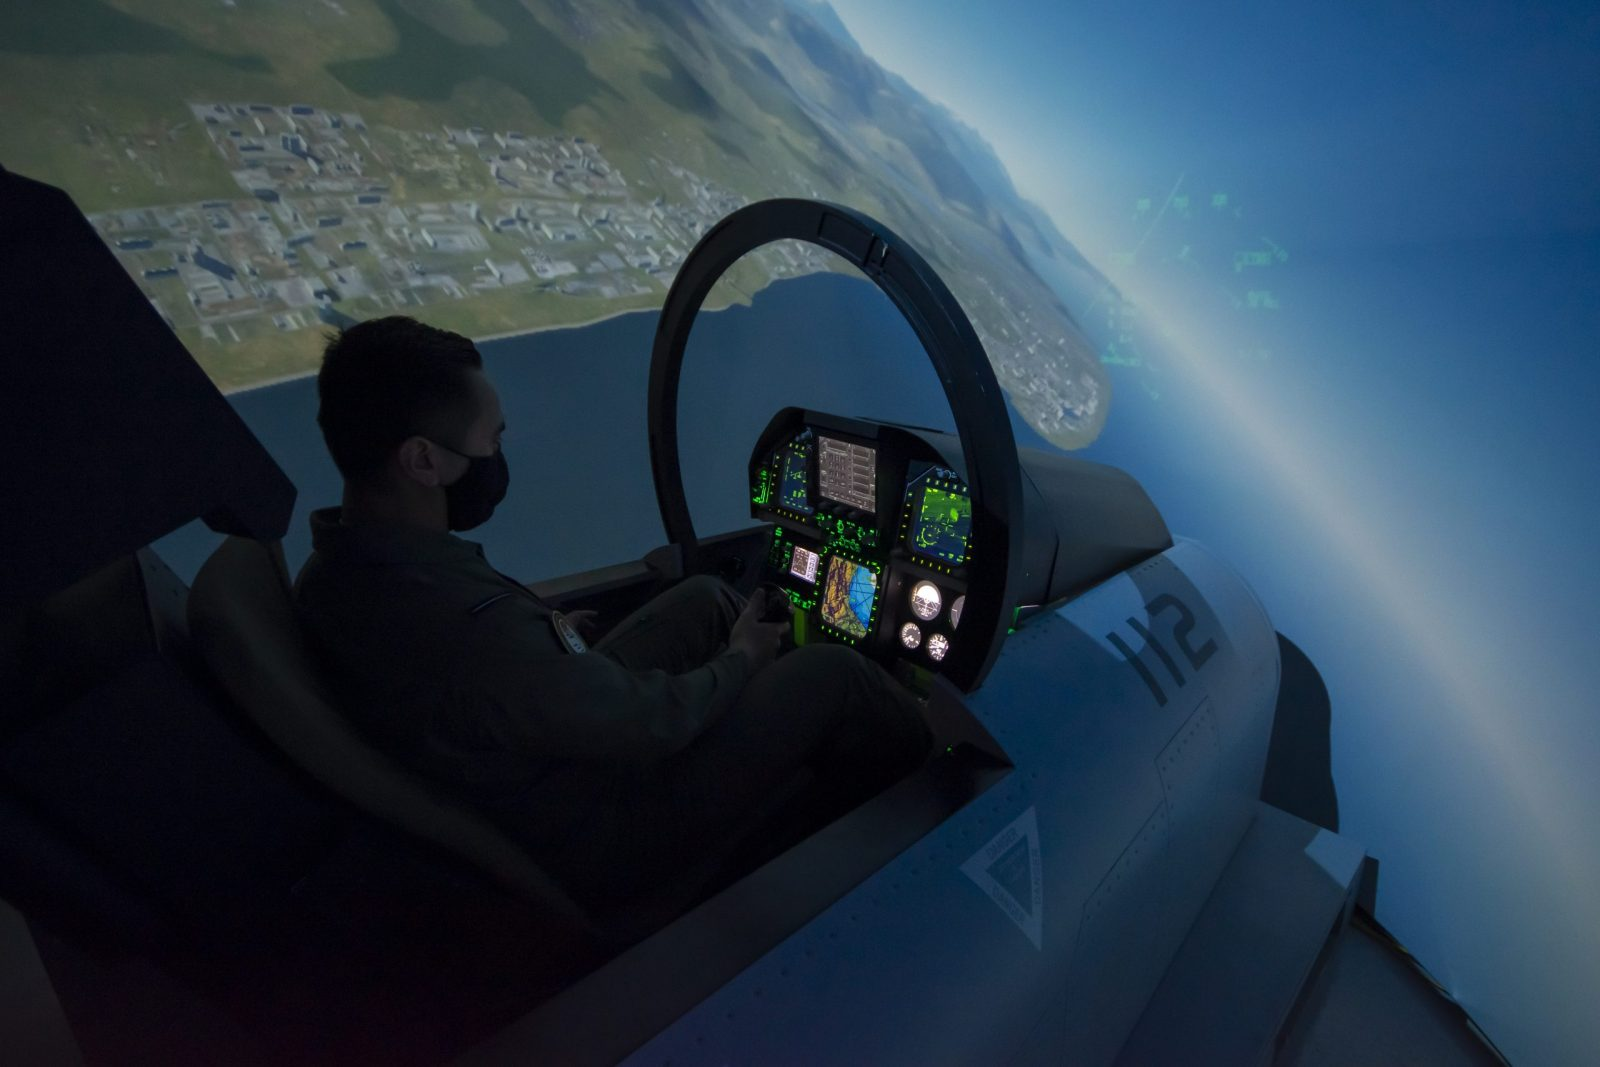 Student in green flight suit using F-18 aircraft simulator